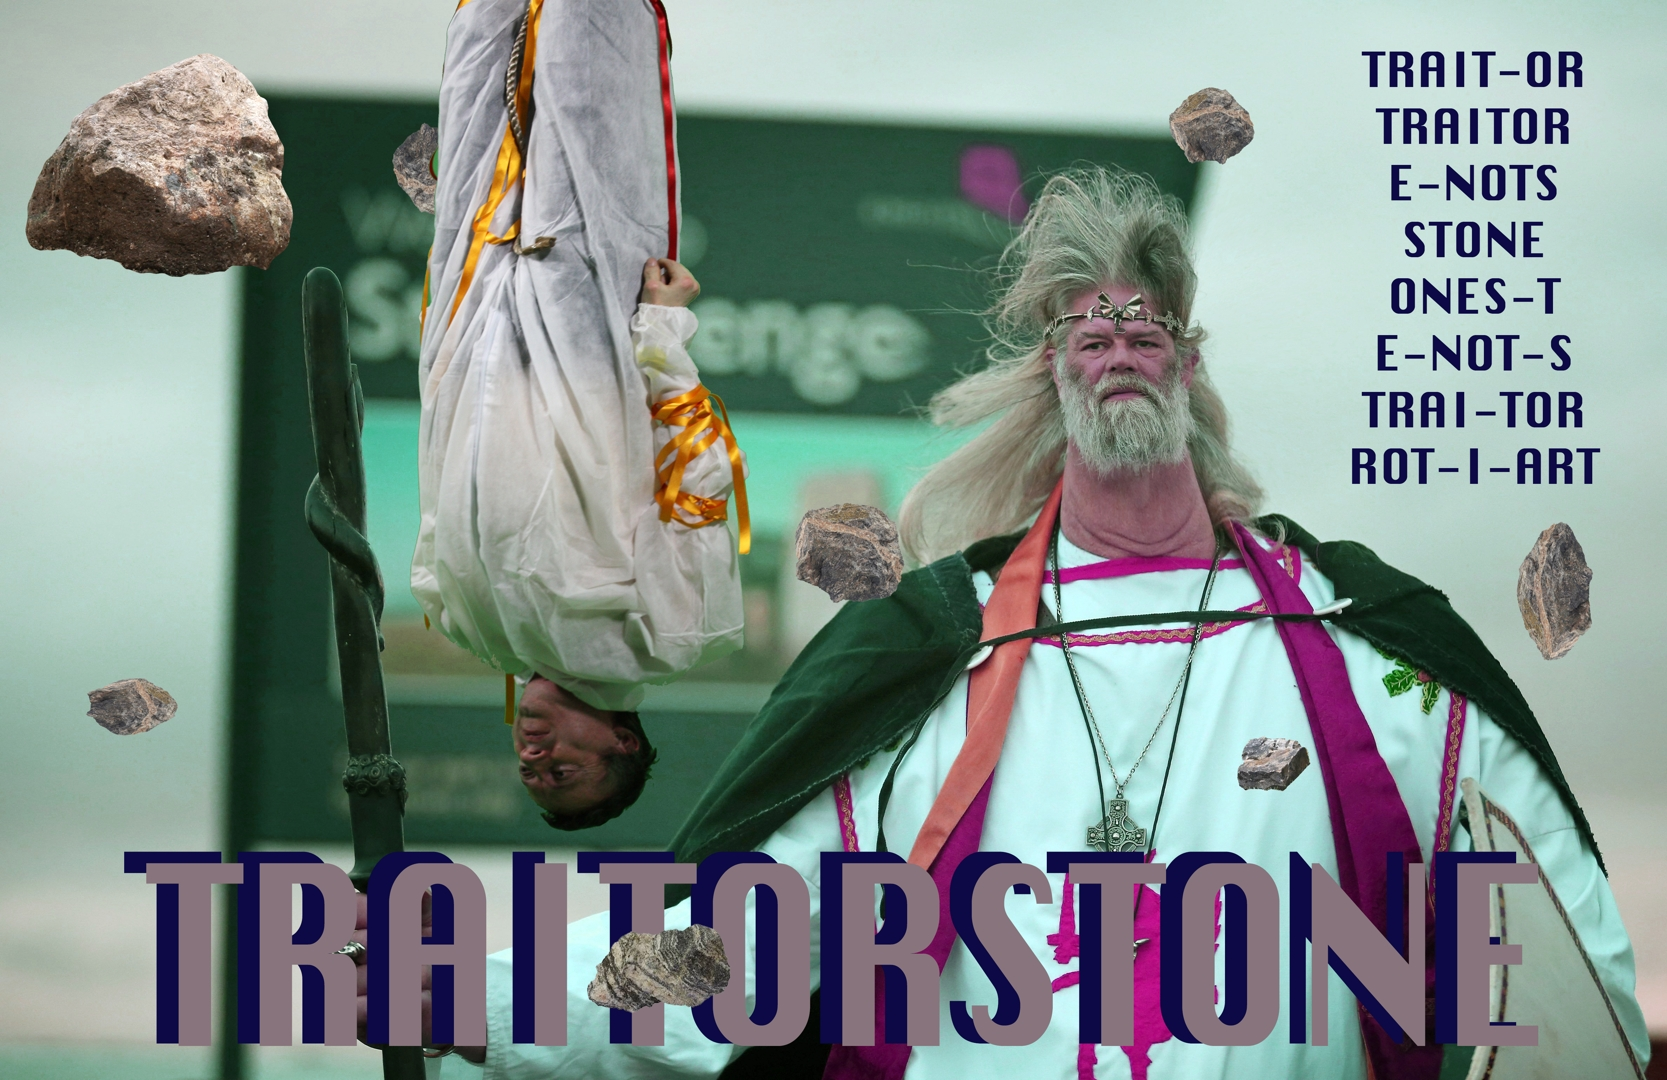 Plastique Fantastique Meme: Traitor Stone | 2017 | digital image. Courtesy of IMT Gallery, London. image